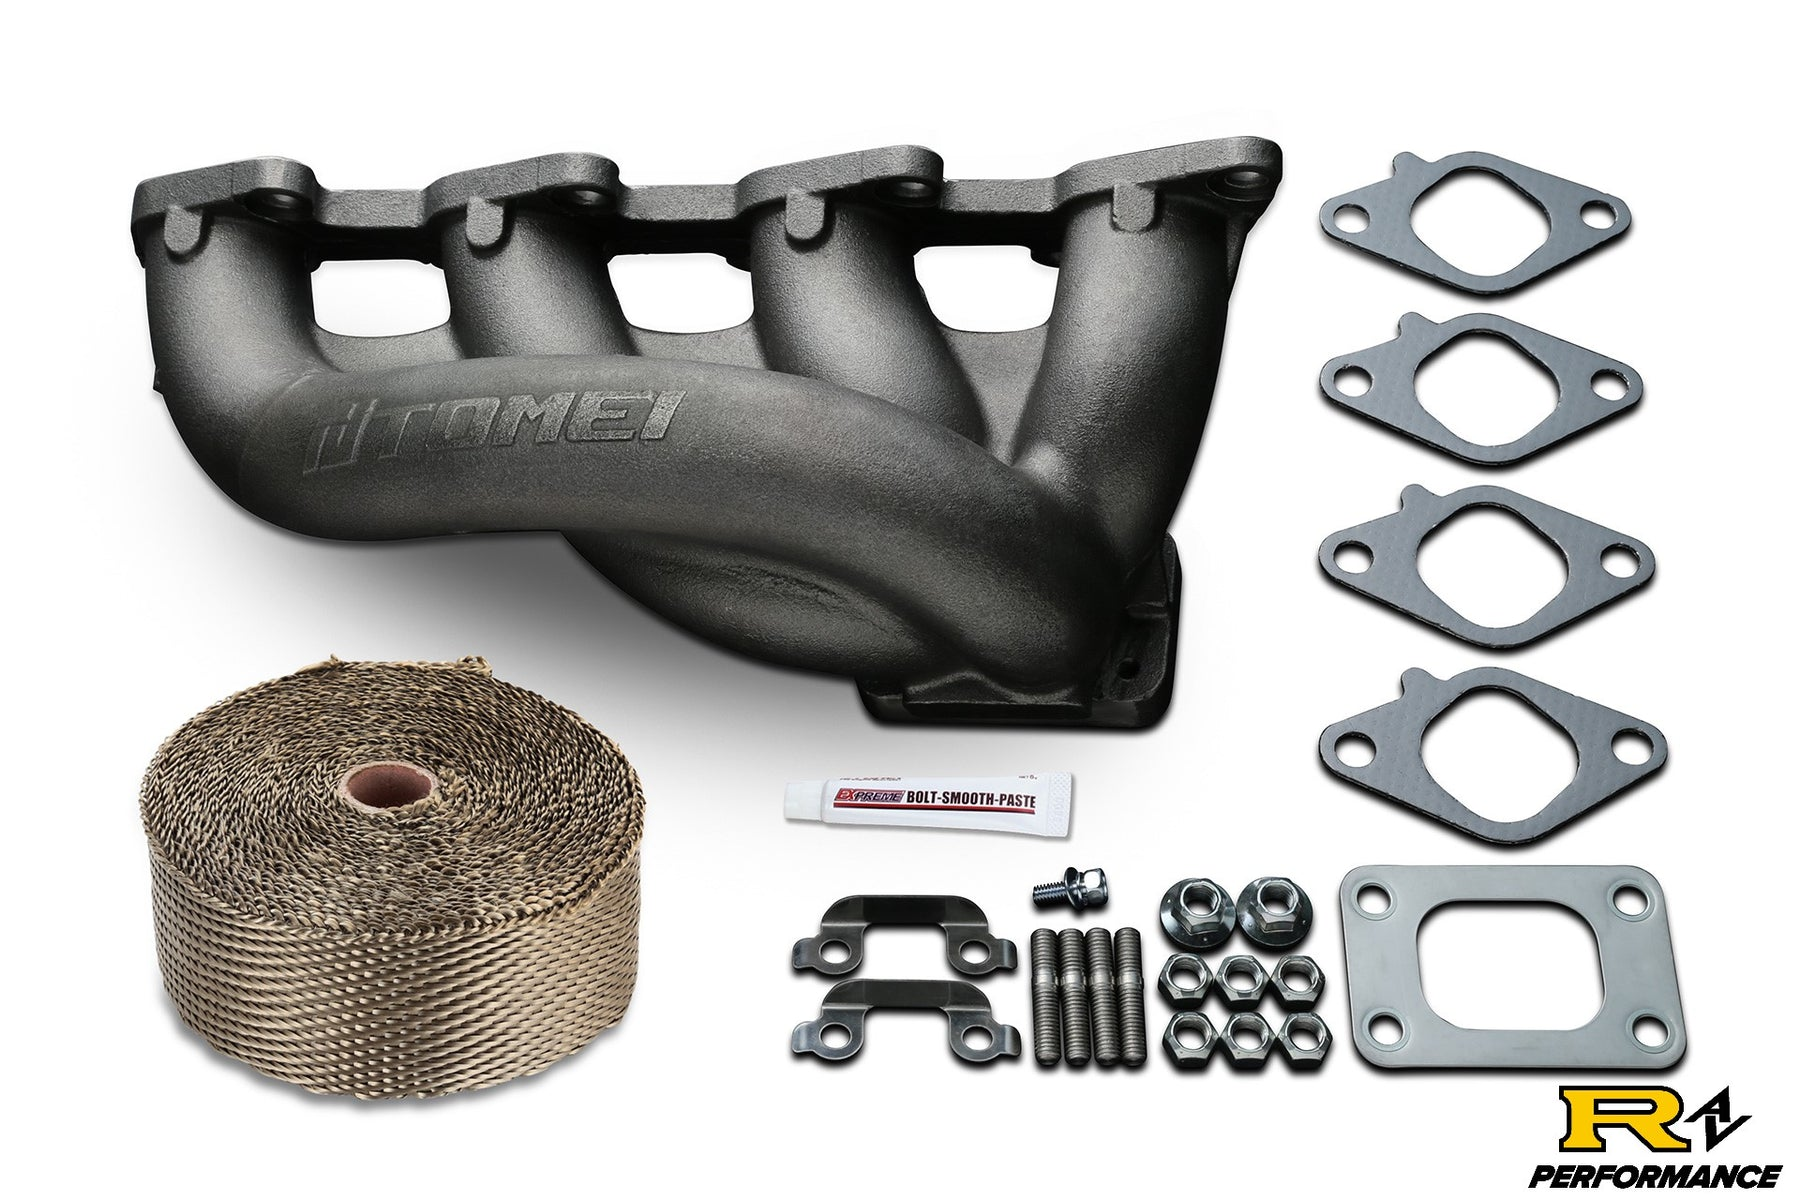 Tomei Turbo Exhaust Manifold for Nissan S13 S14 240sx KA24DE TB601A-NS16A